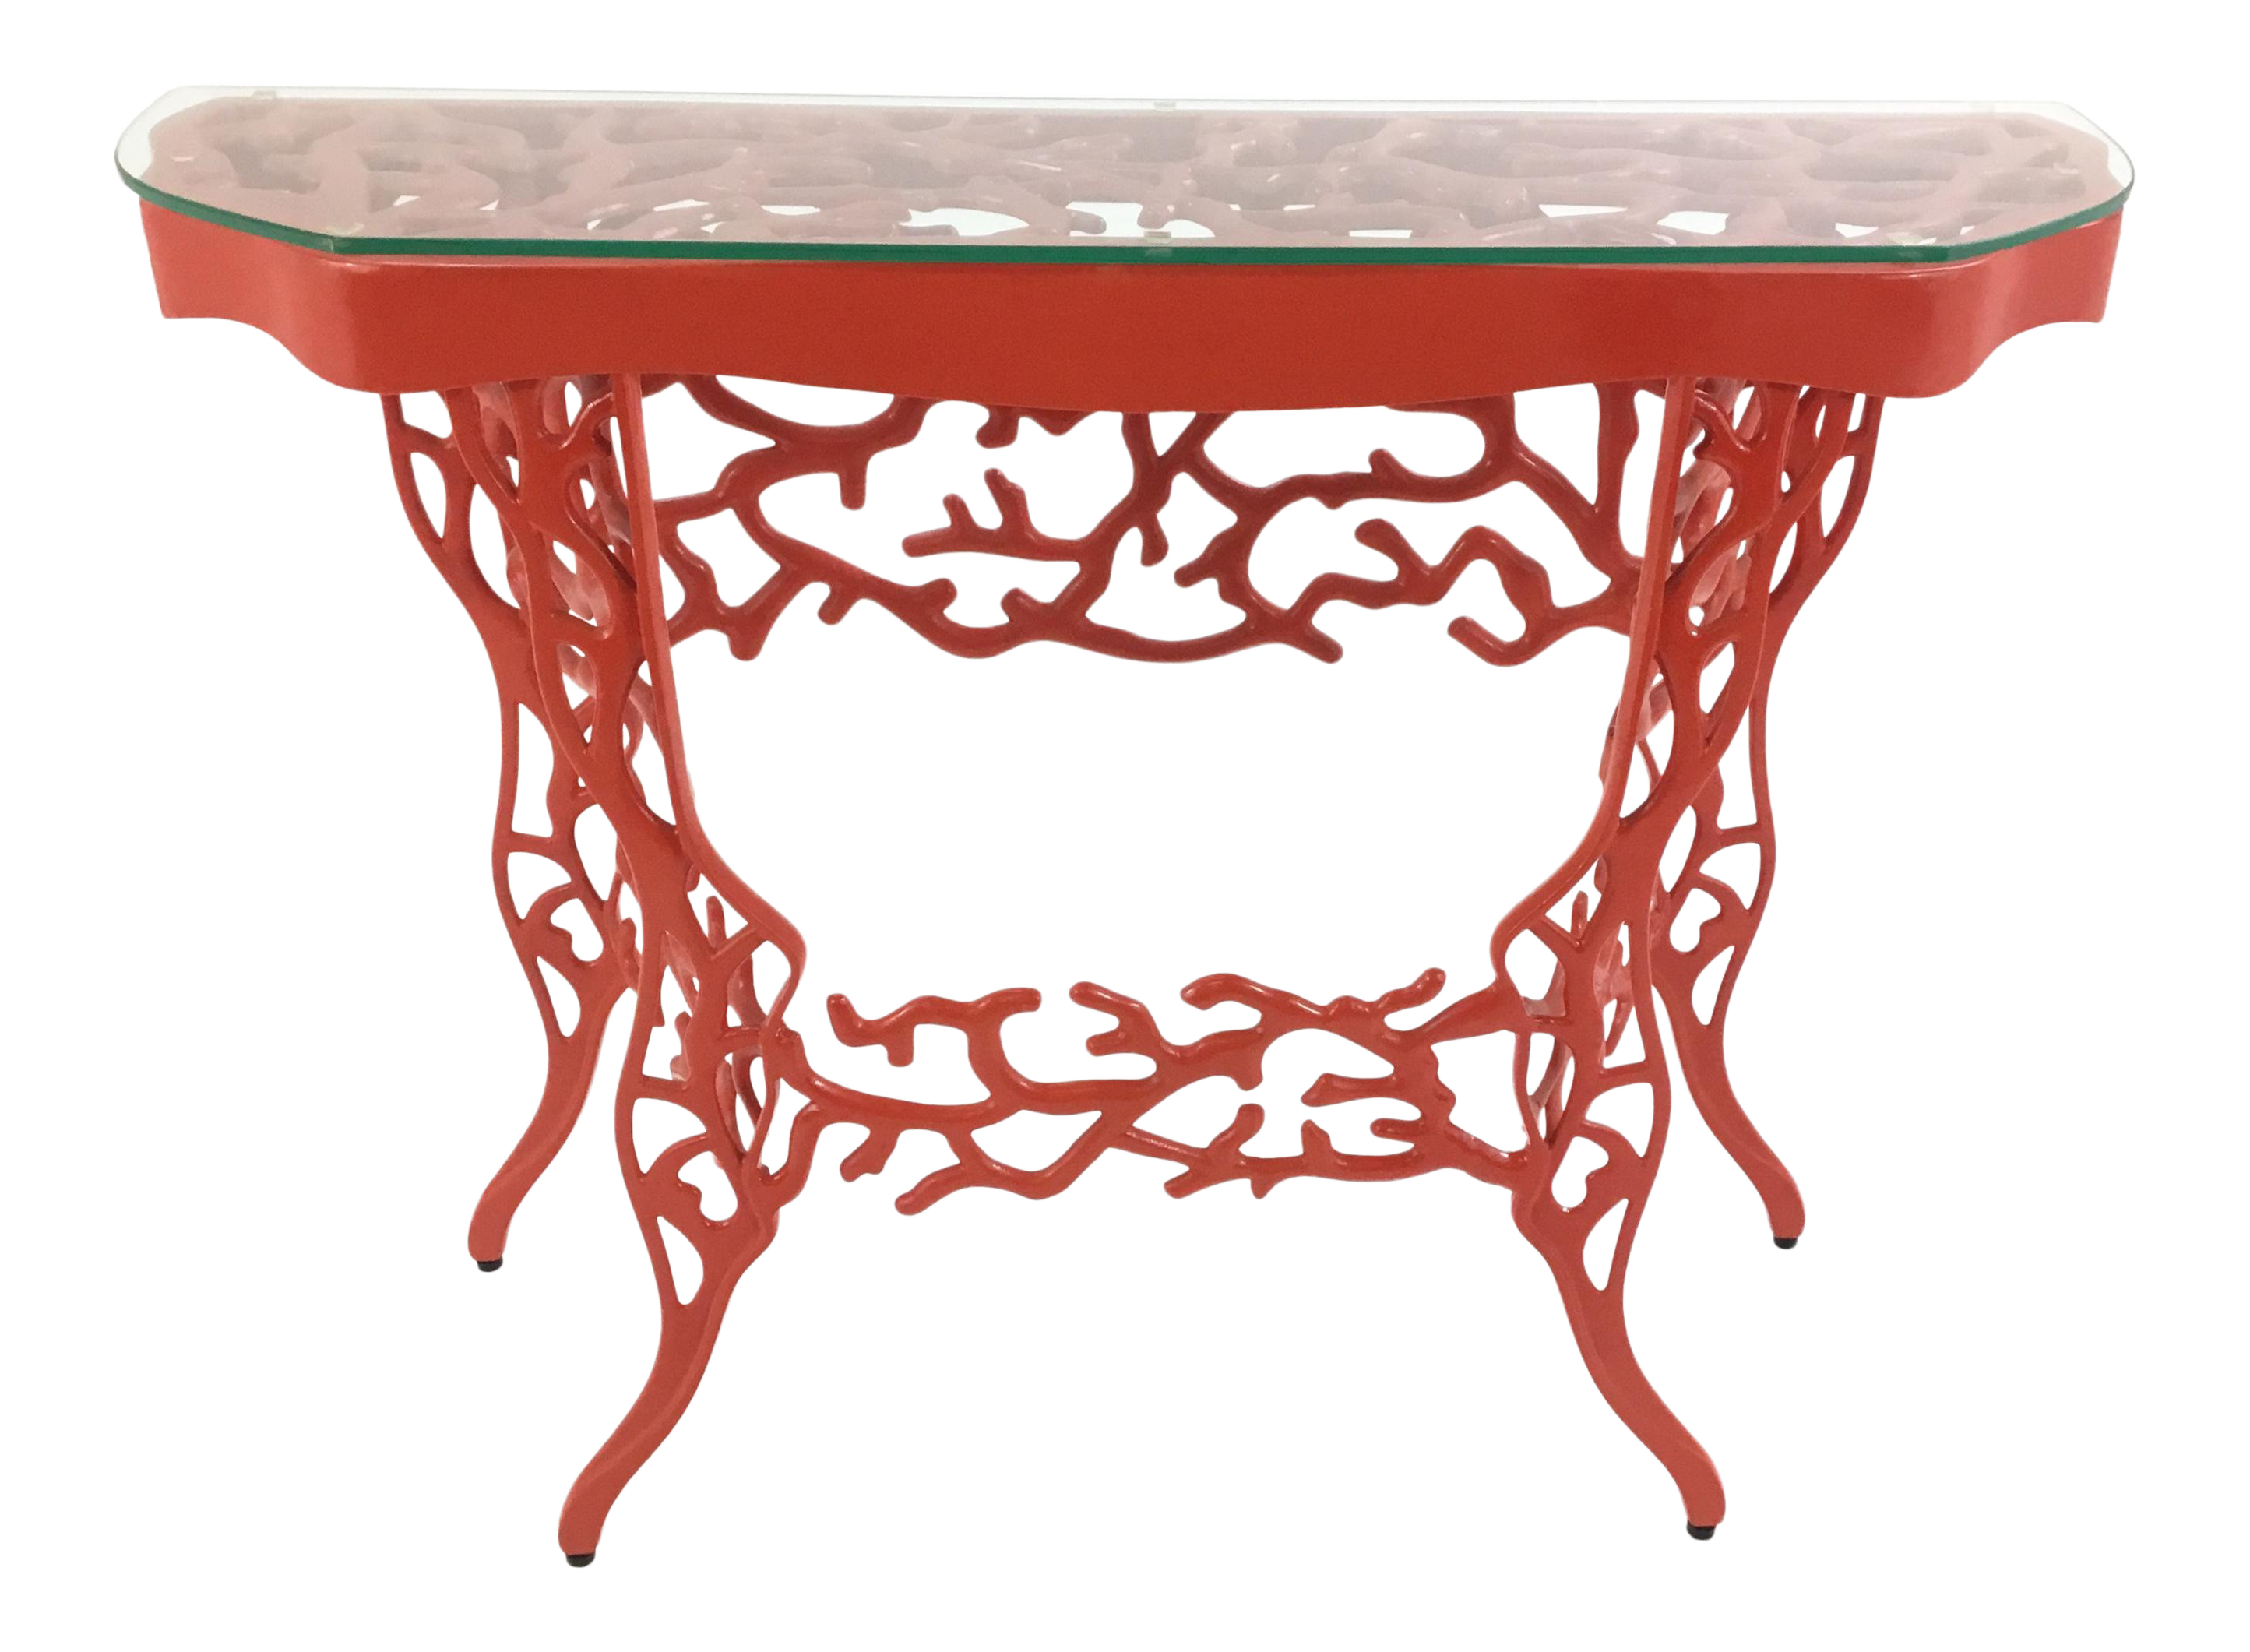 vintage used console tables for chairish currey and coral table mirrored glass accent with drawer high top wine rack lawn garden furniture rubber carpet edging trim ashley bedding